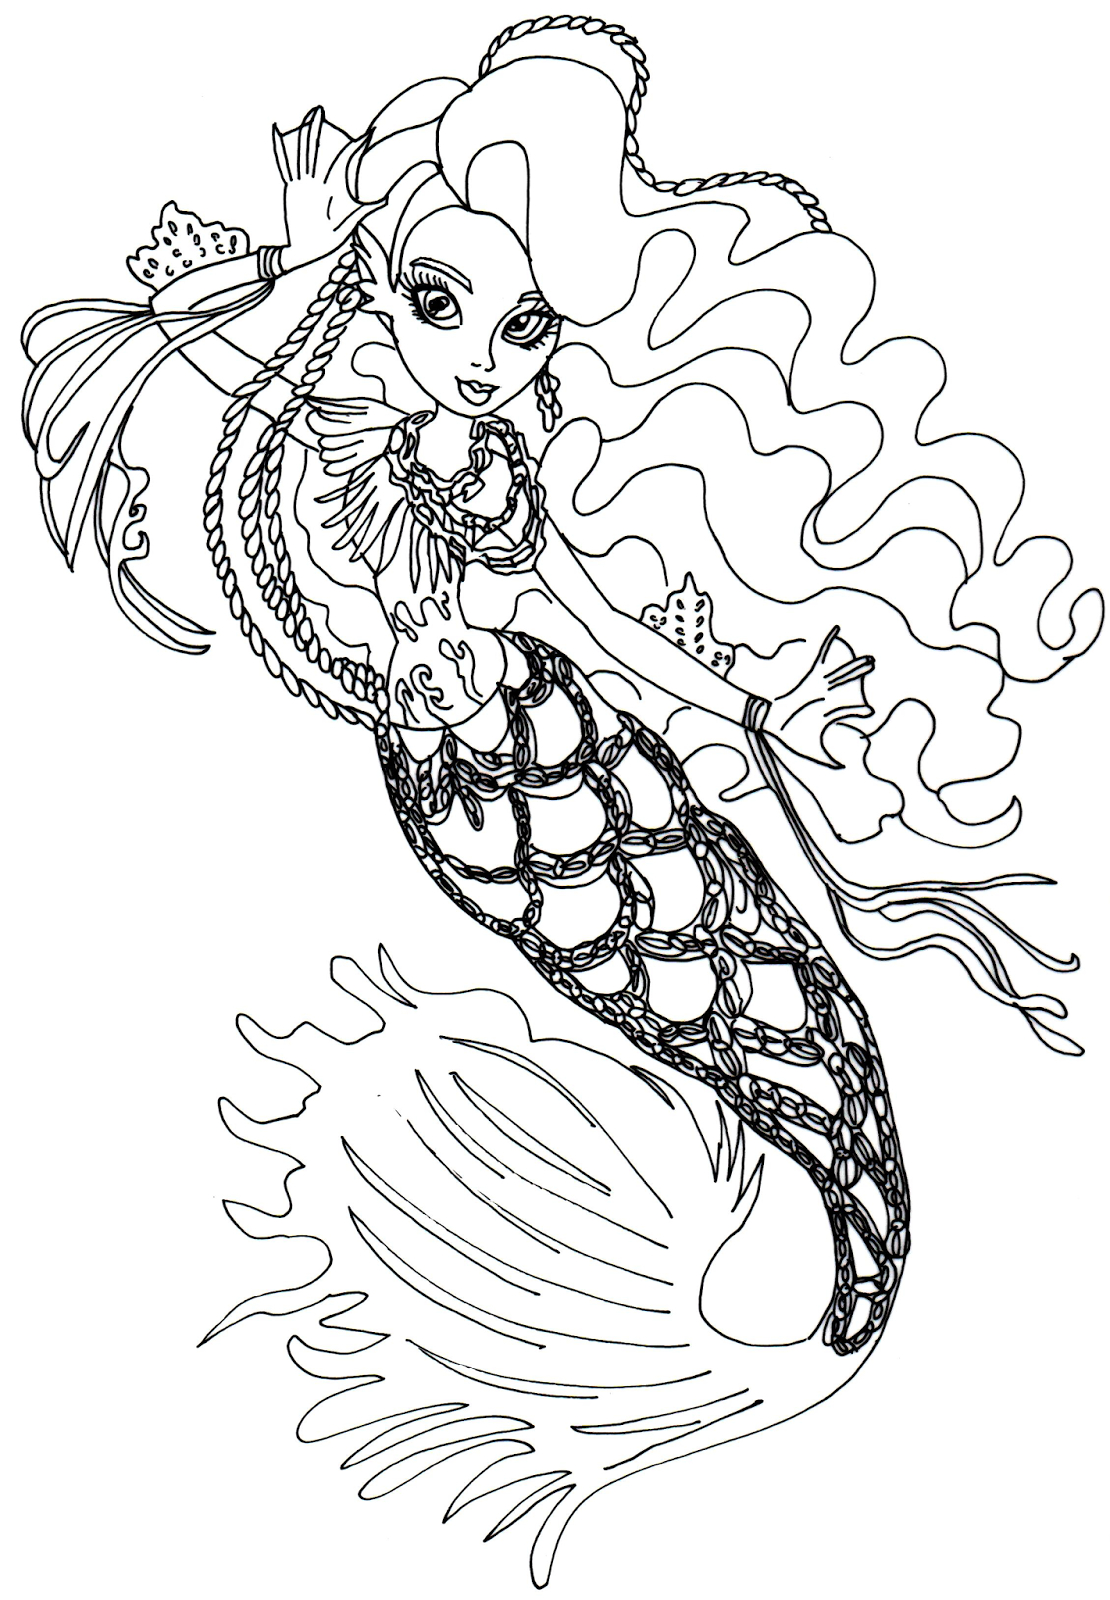 Monster High Coloring Pages Monster High Coloring Page All Collection Of Monster High Coloring Pages Monster High Coloring Page All Collection